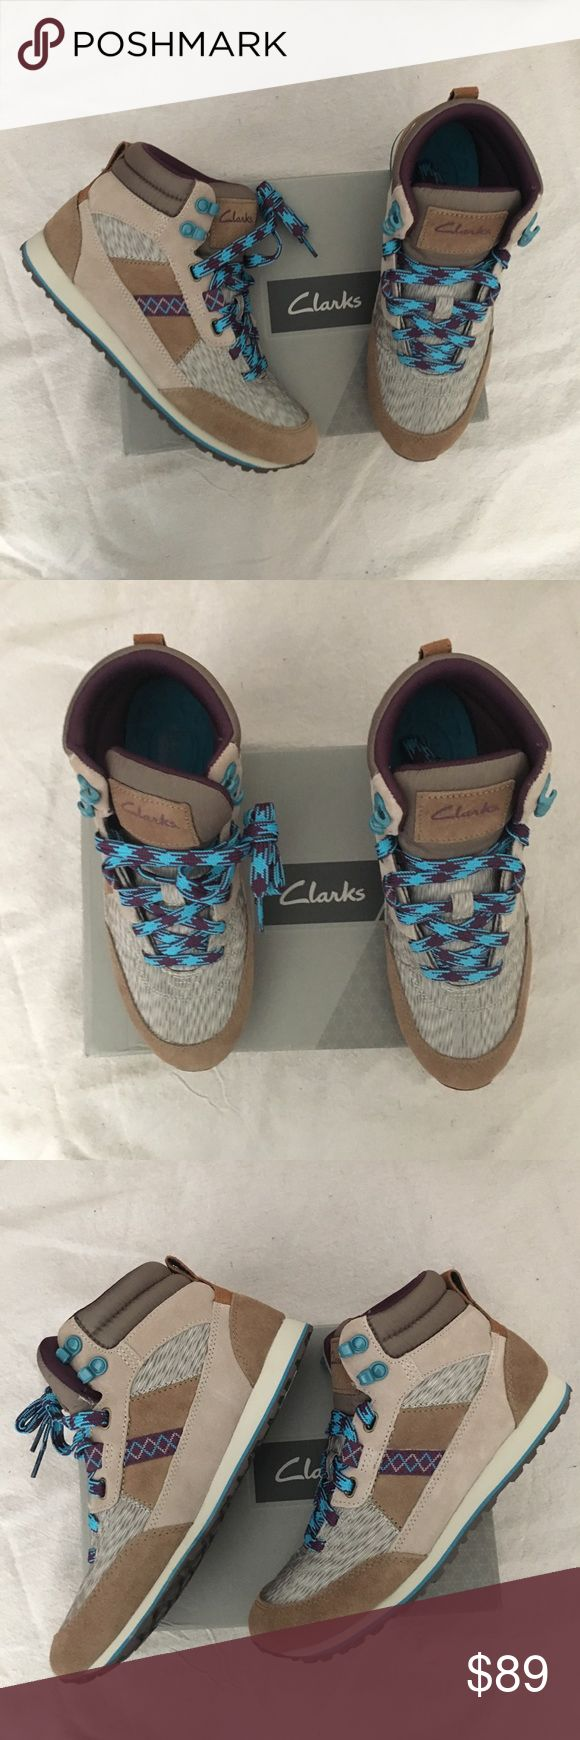 Clarks Hiking Hiker Shoe Boots This is a new in box hiker lace up shoes boots from Clarks. Really cute shoes for outdoors and hiking. Offers welcome Clarks Shoes Athletic Shoes